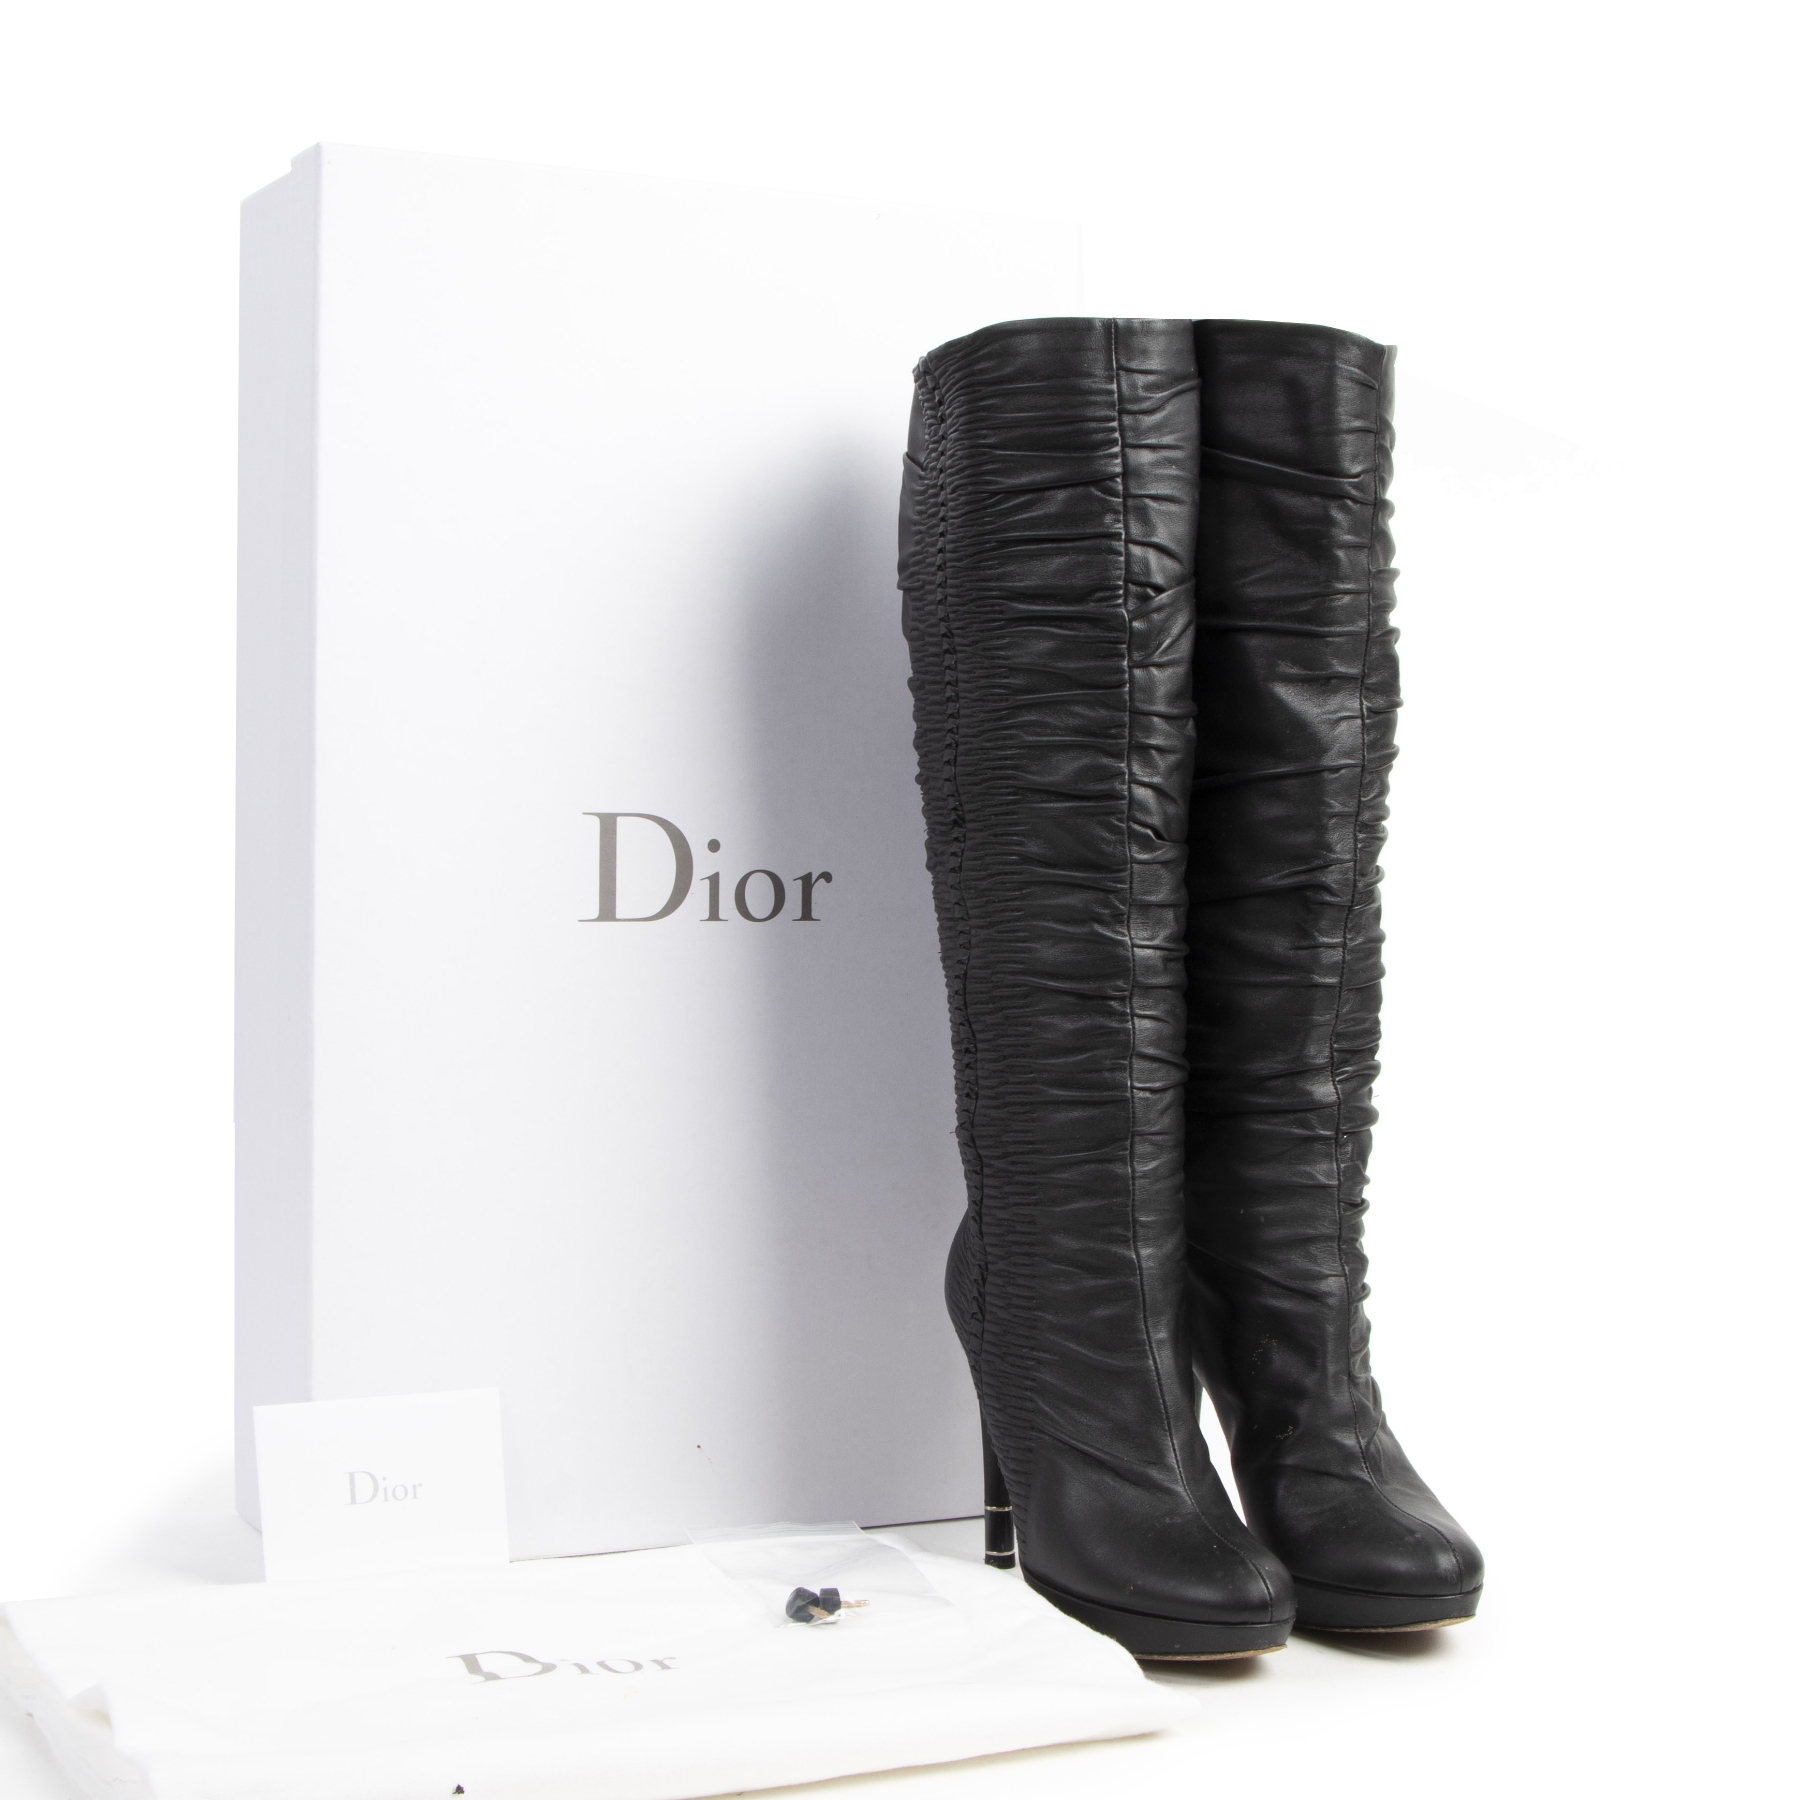 Dior Black Leather Knee High Boots Hermitage pour le meilleur prix chez Labellov à Anvers